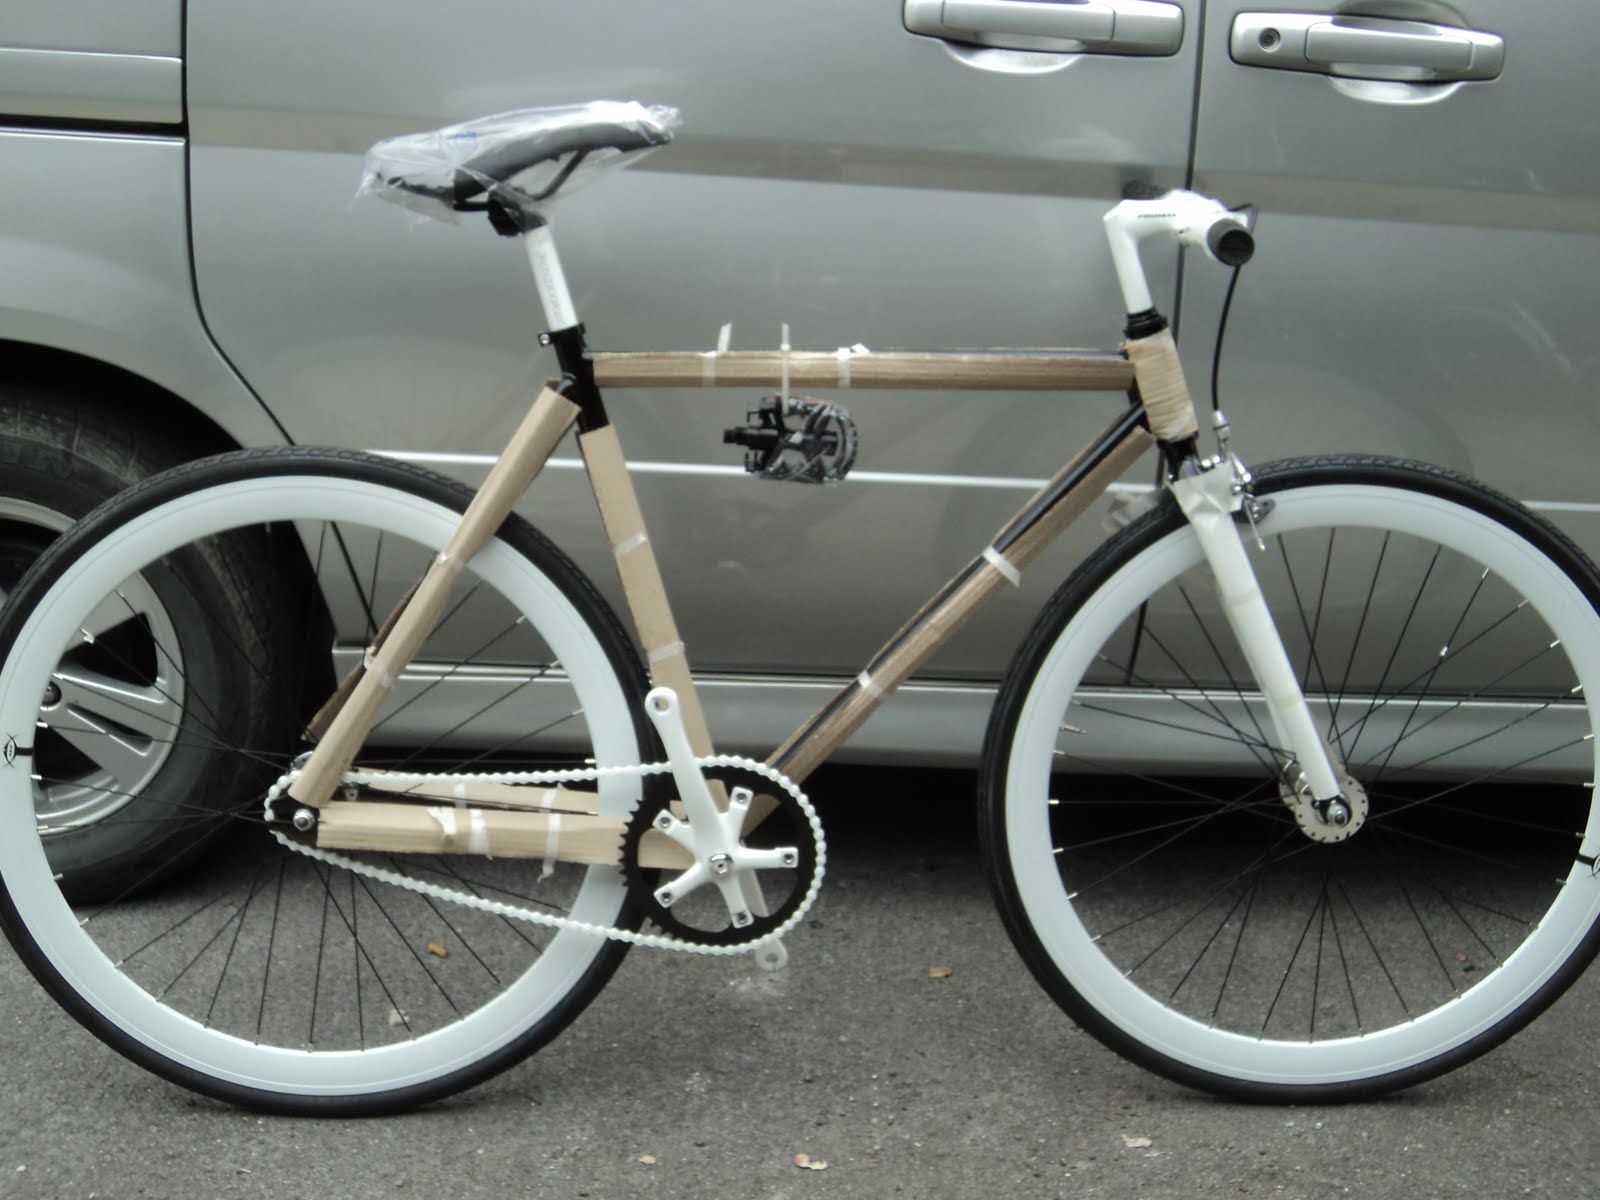 The Right Bike Store: 700C Imported New Fixed Gear Bicycle / Fixie ...